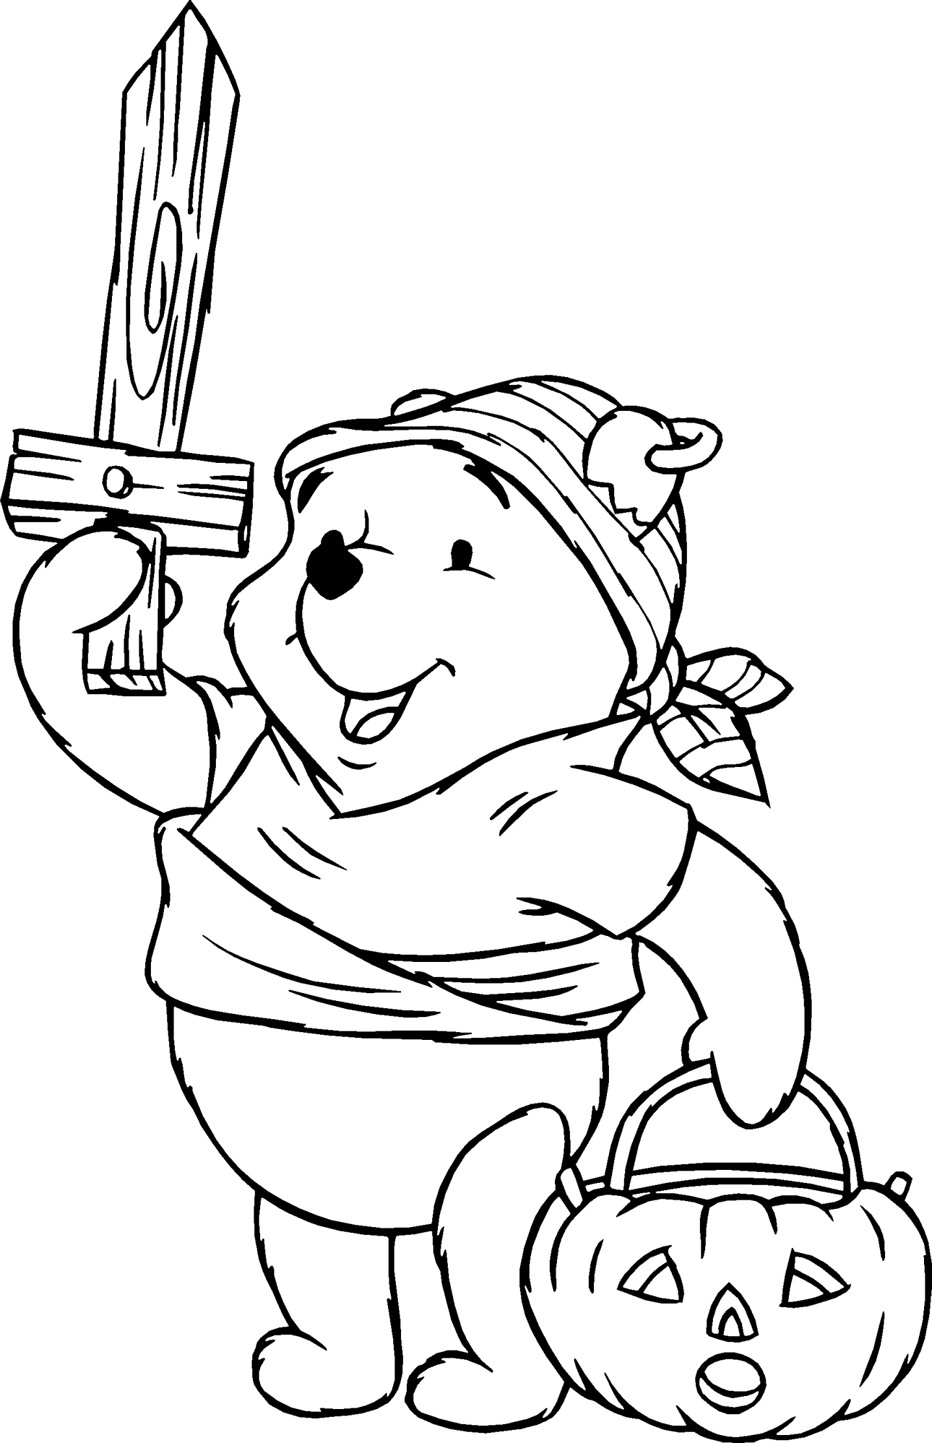 printable winnie pooh coloring pages - photo#33